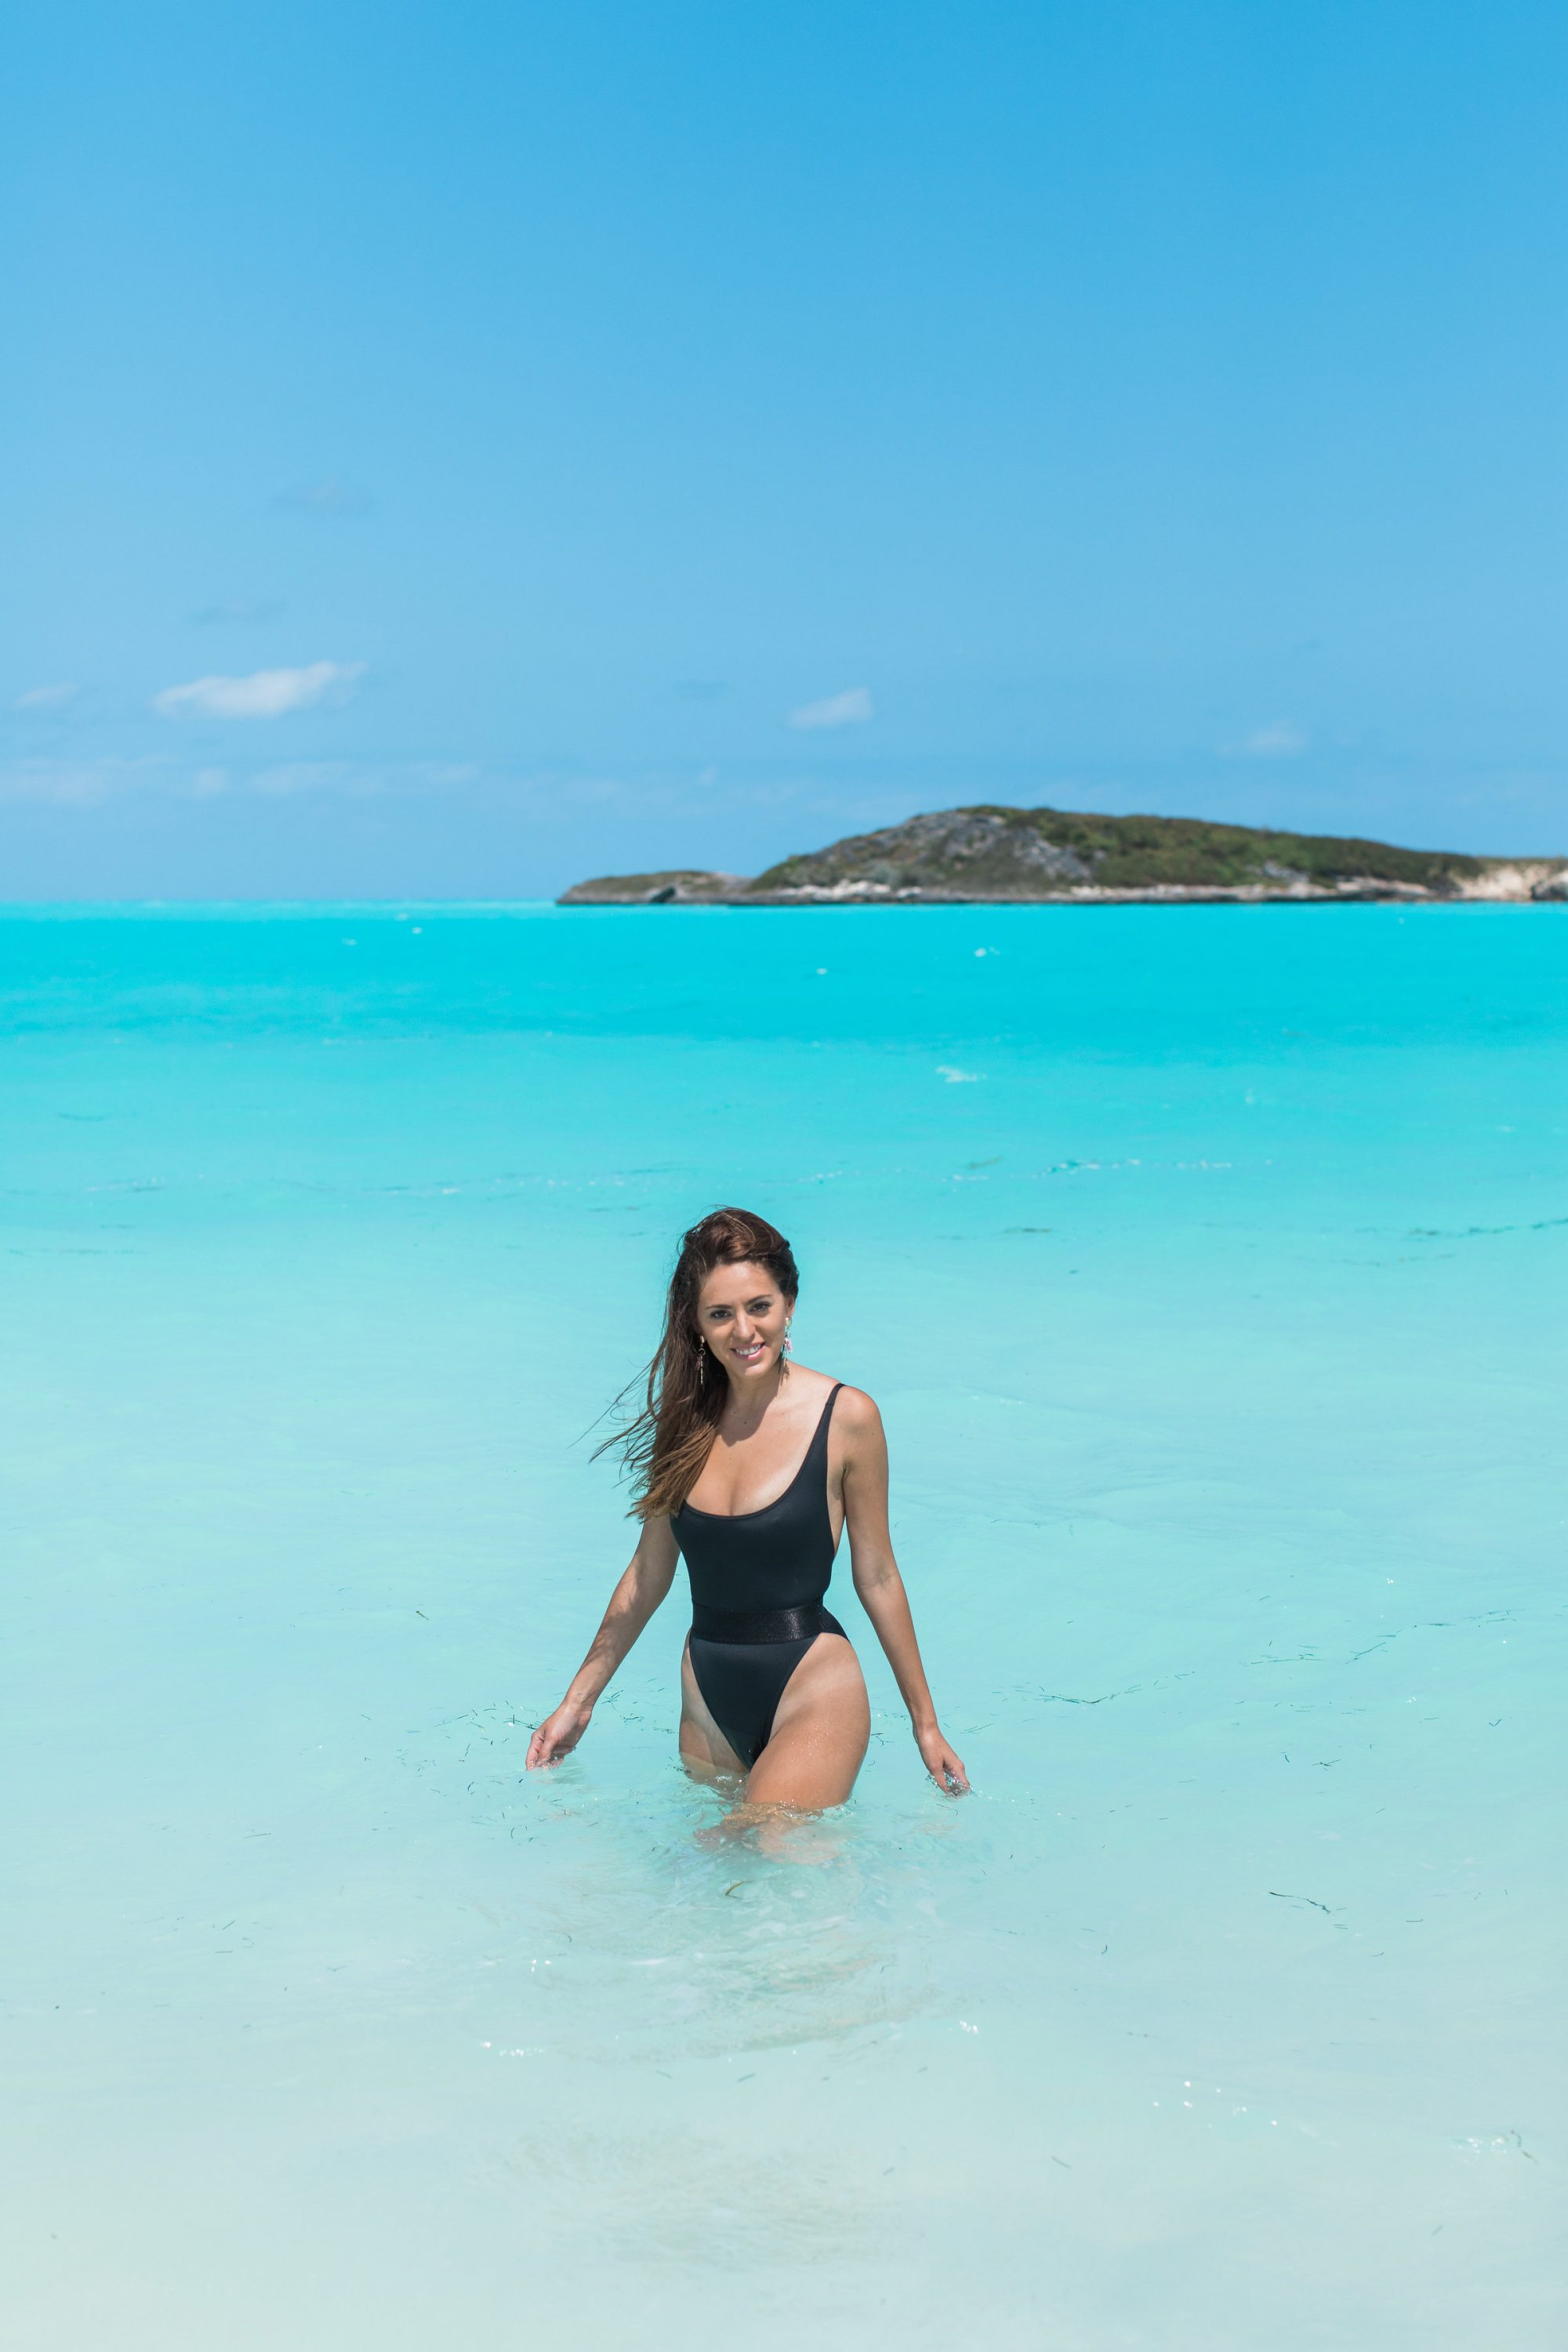 Luxury travel & lifestyle blogger, Lush to Blush shares the ultimate Exuma travel guide. Exuma is the most beautiful islands.